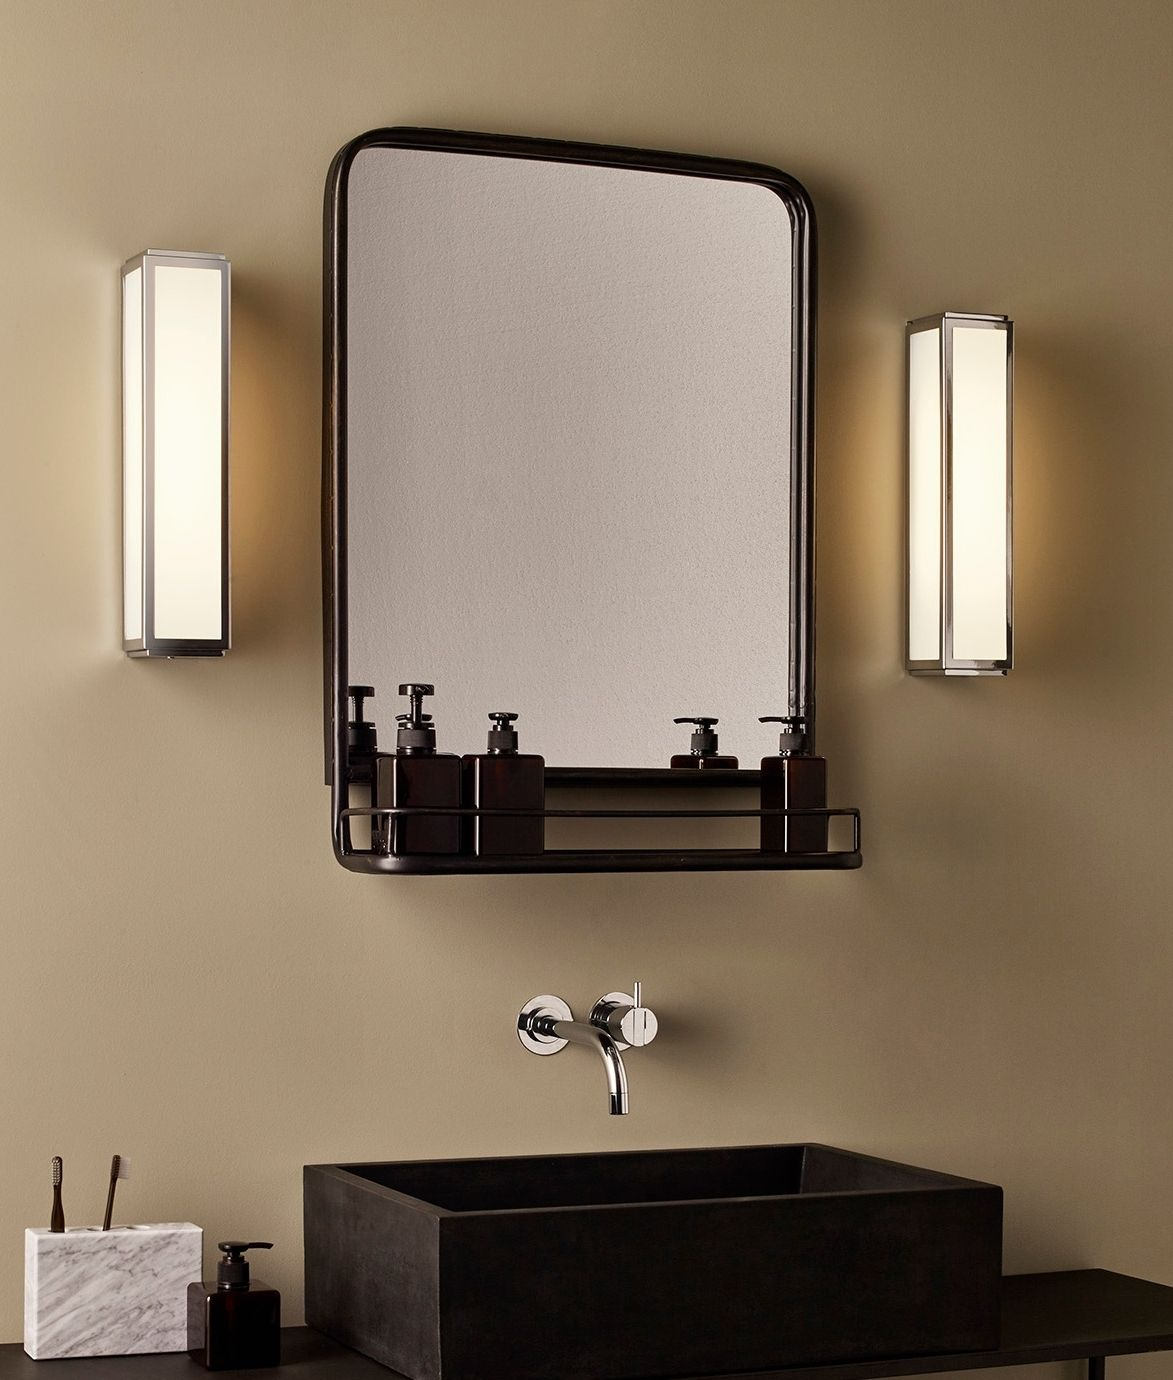 Ip44 Slim Wall Light With Opal Glass For Zones 2 And 3